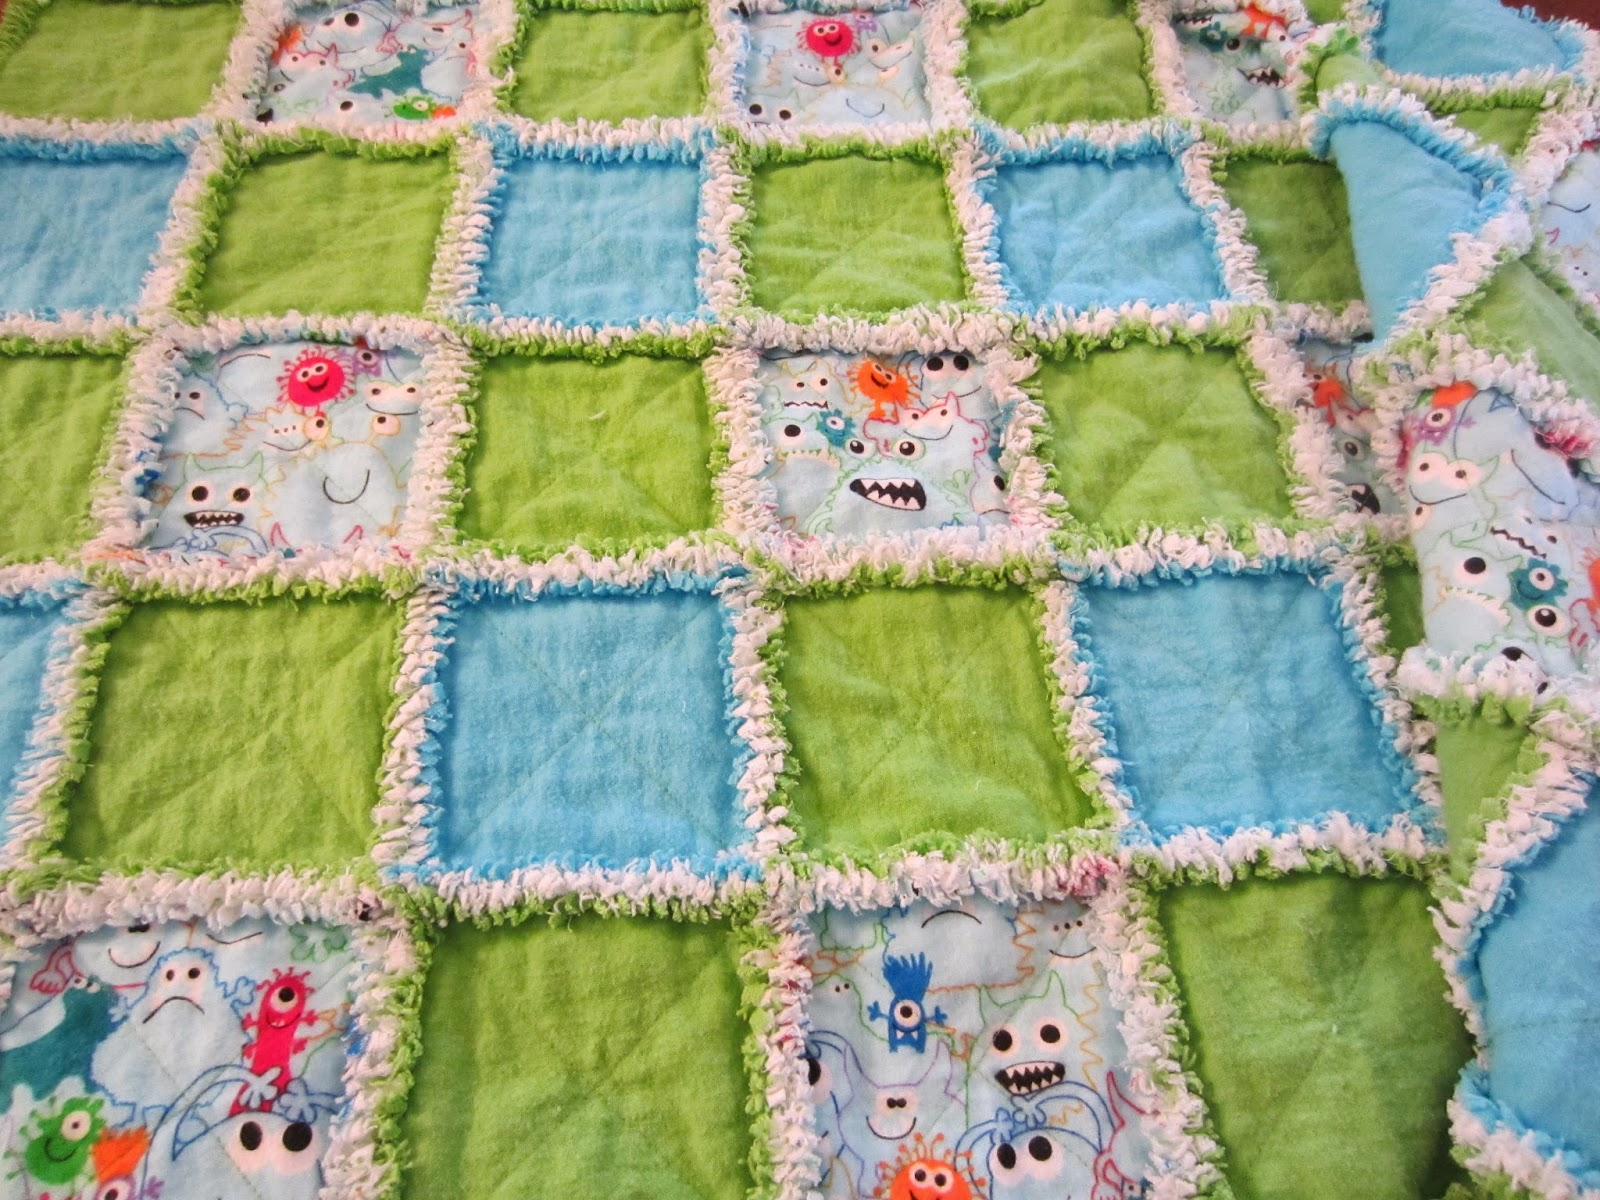 Ragtime Blues 15 Rag Quilt Patterns Favecrafts